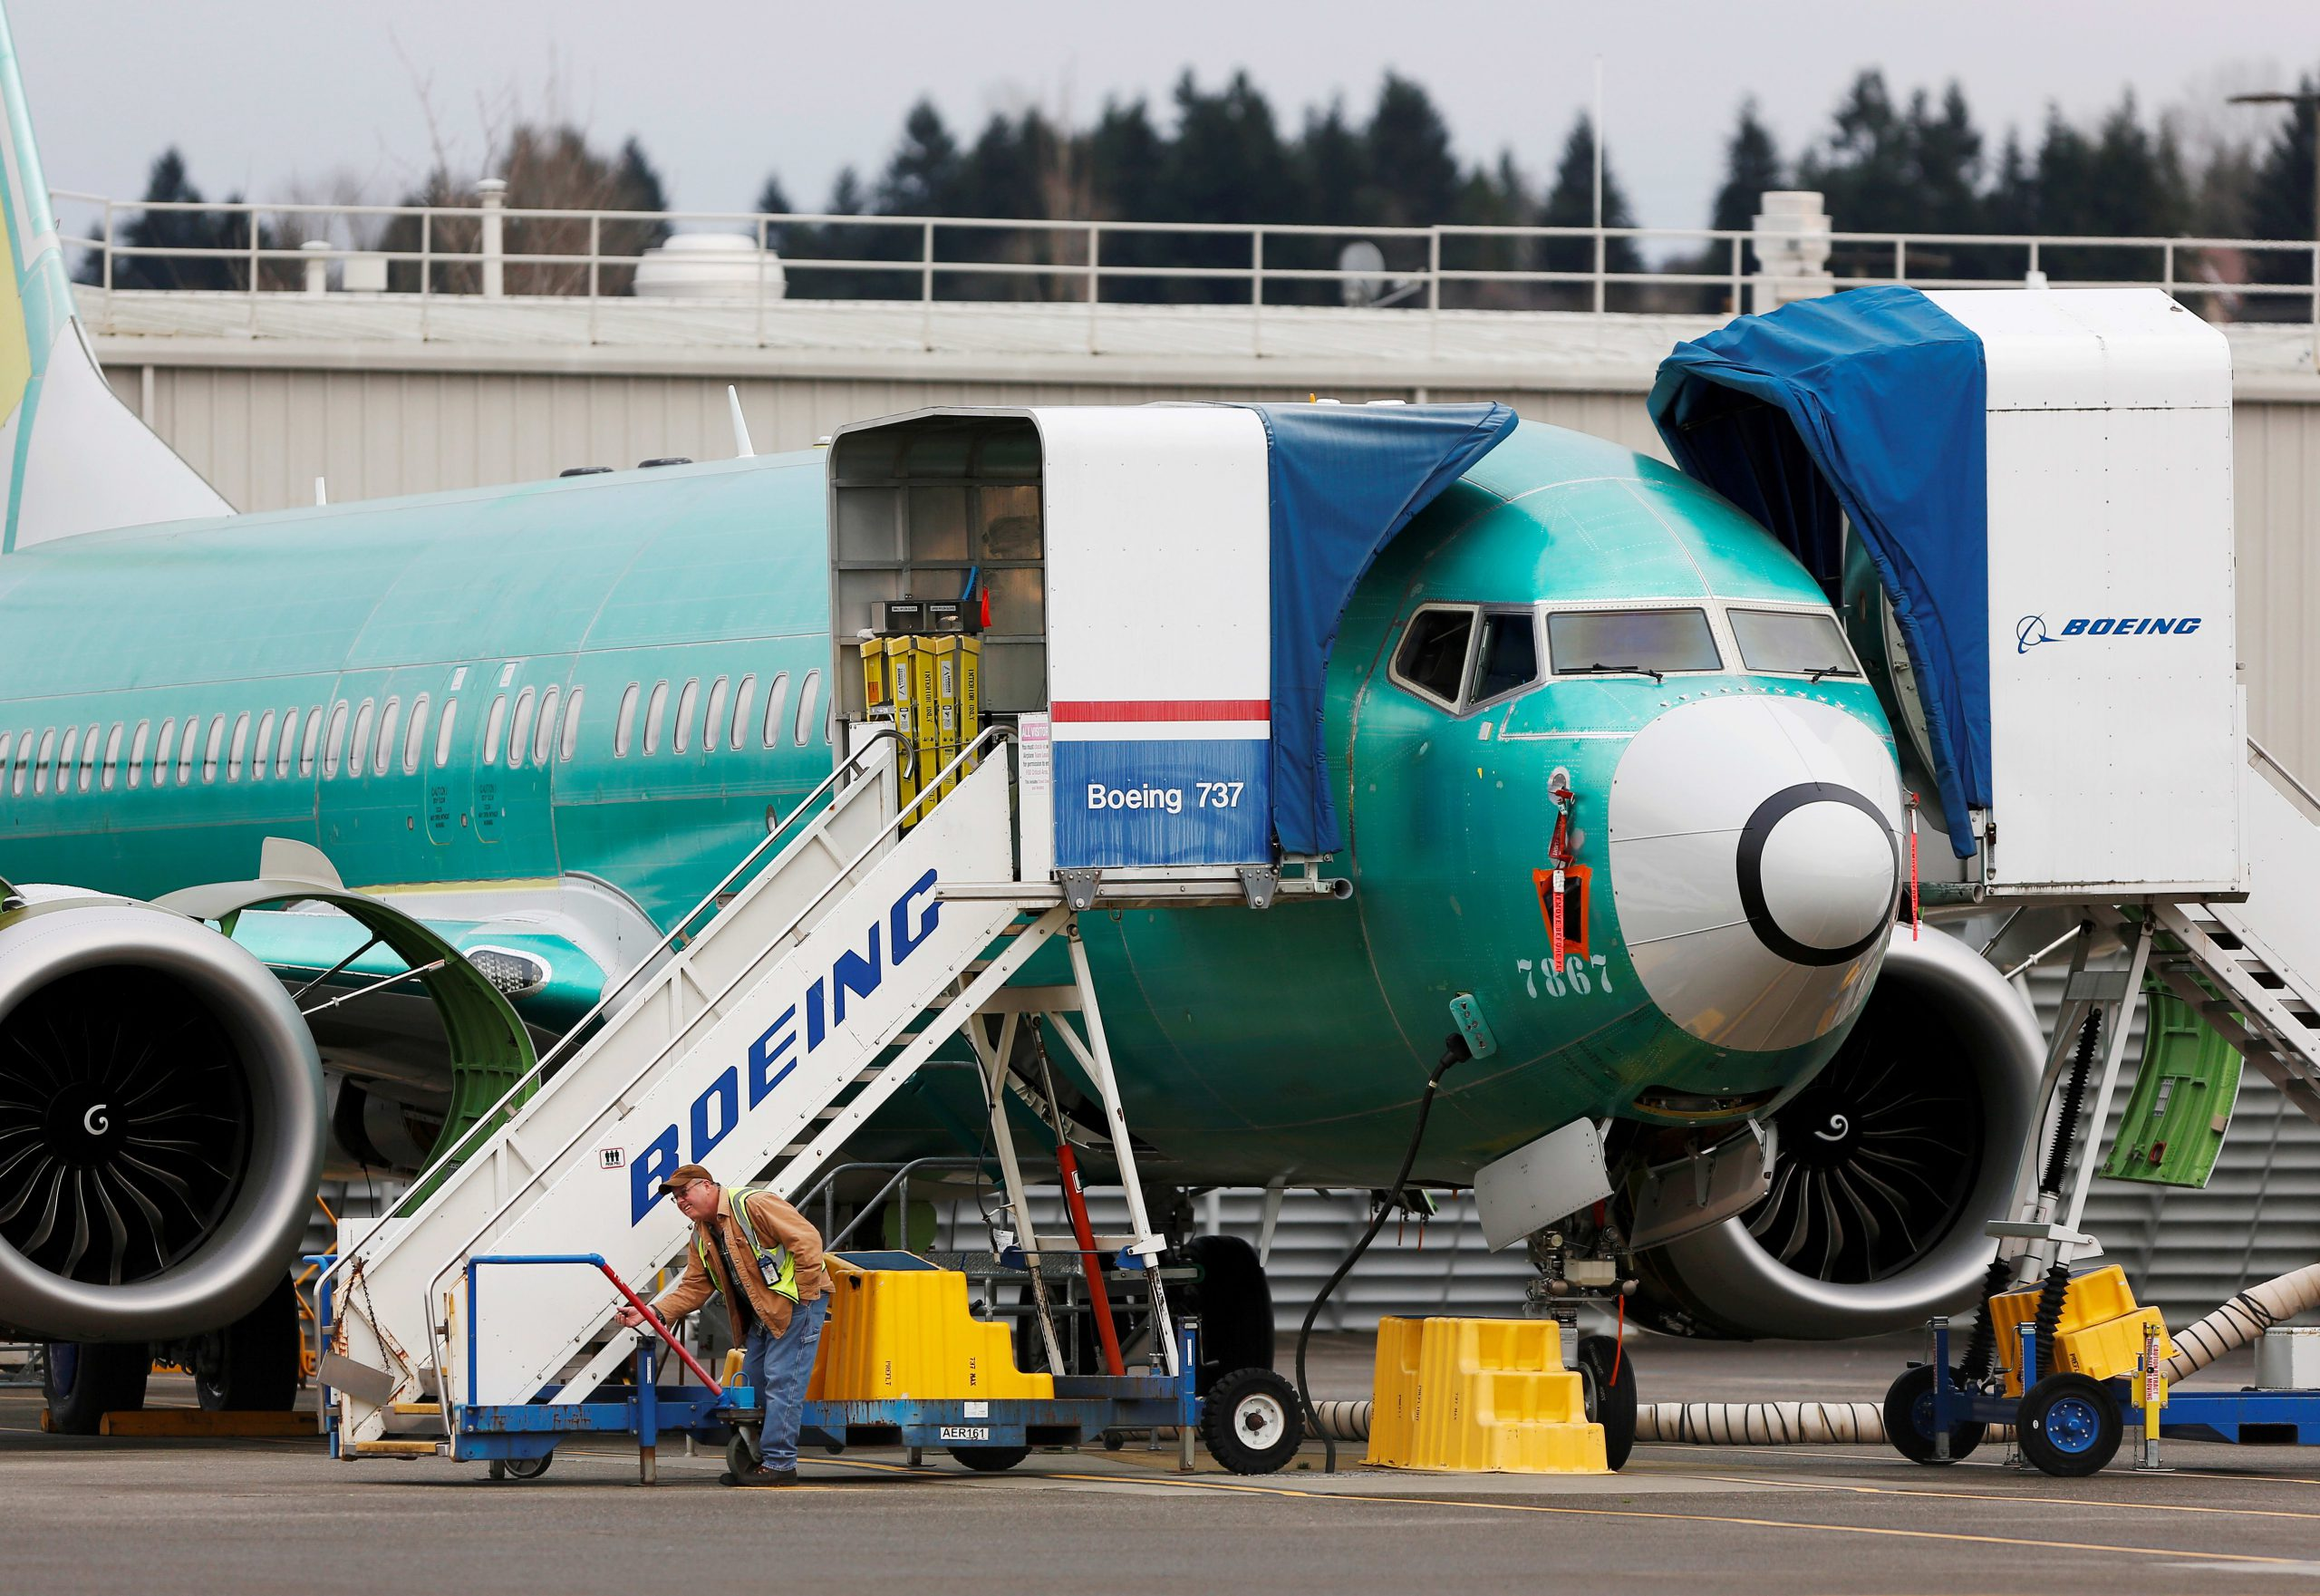 FAA tells Boeing that 737 Max wiring bundles are 'not compliant'